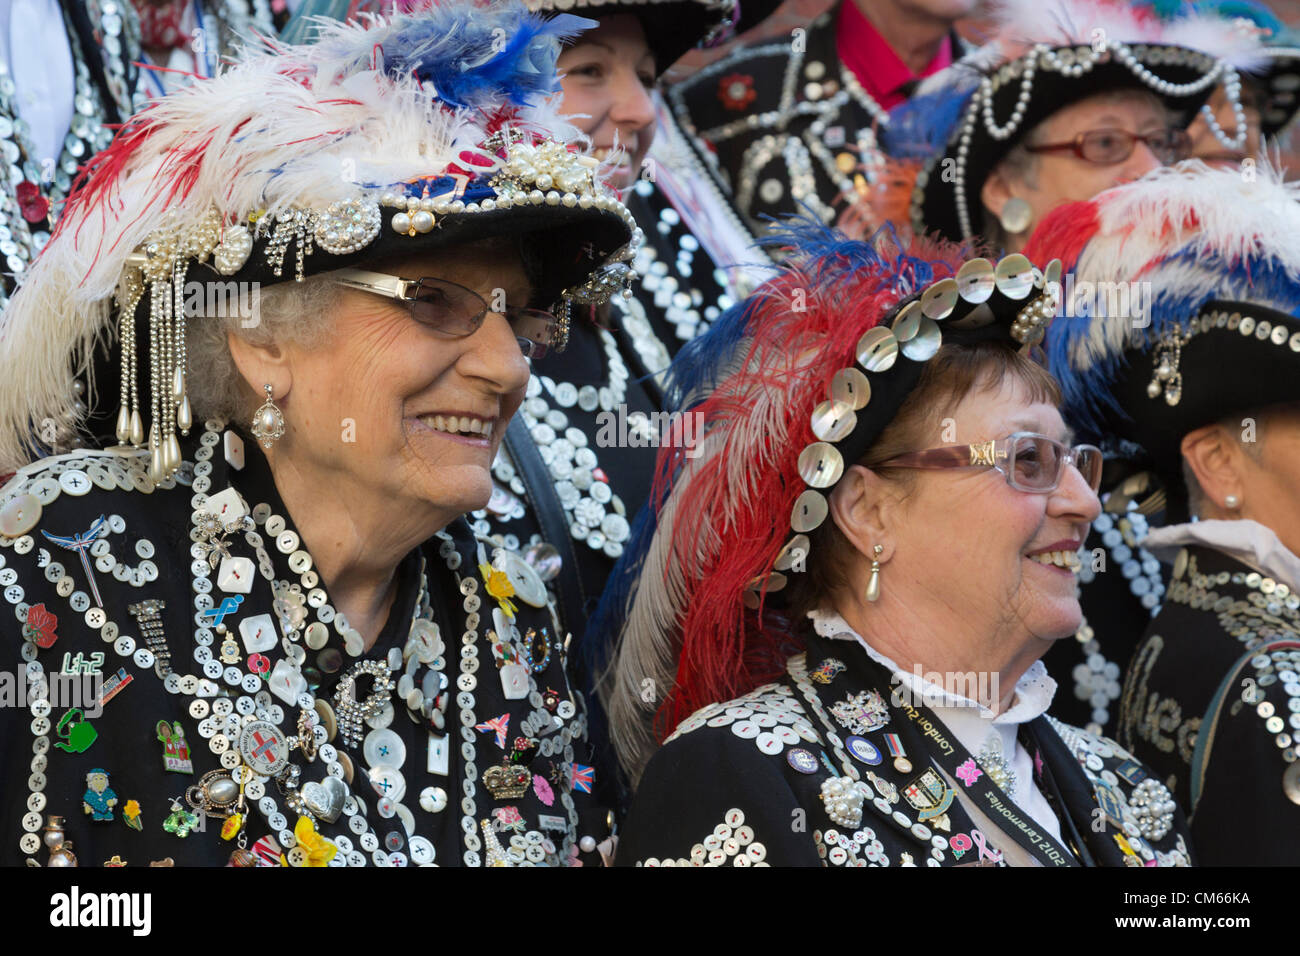 Pearly Kings & Queens from the Pearly Kings & Queens Society gather at St. Paul's Church in Covent Garden - Stock Image